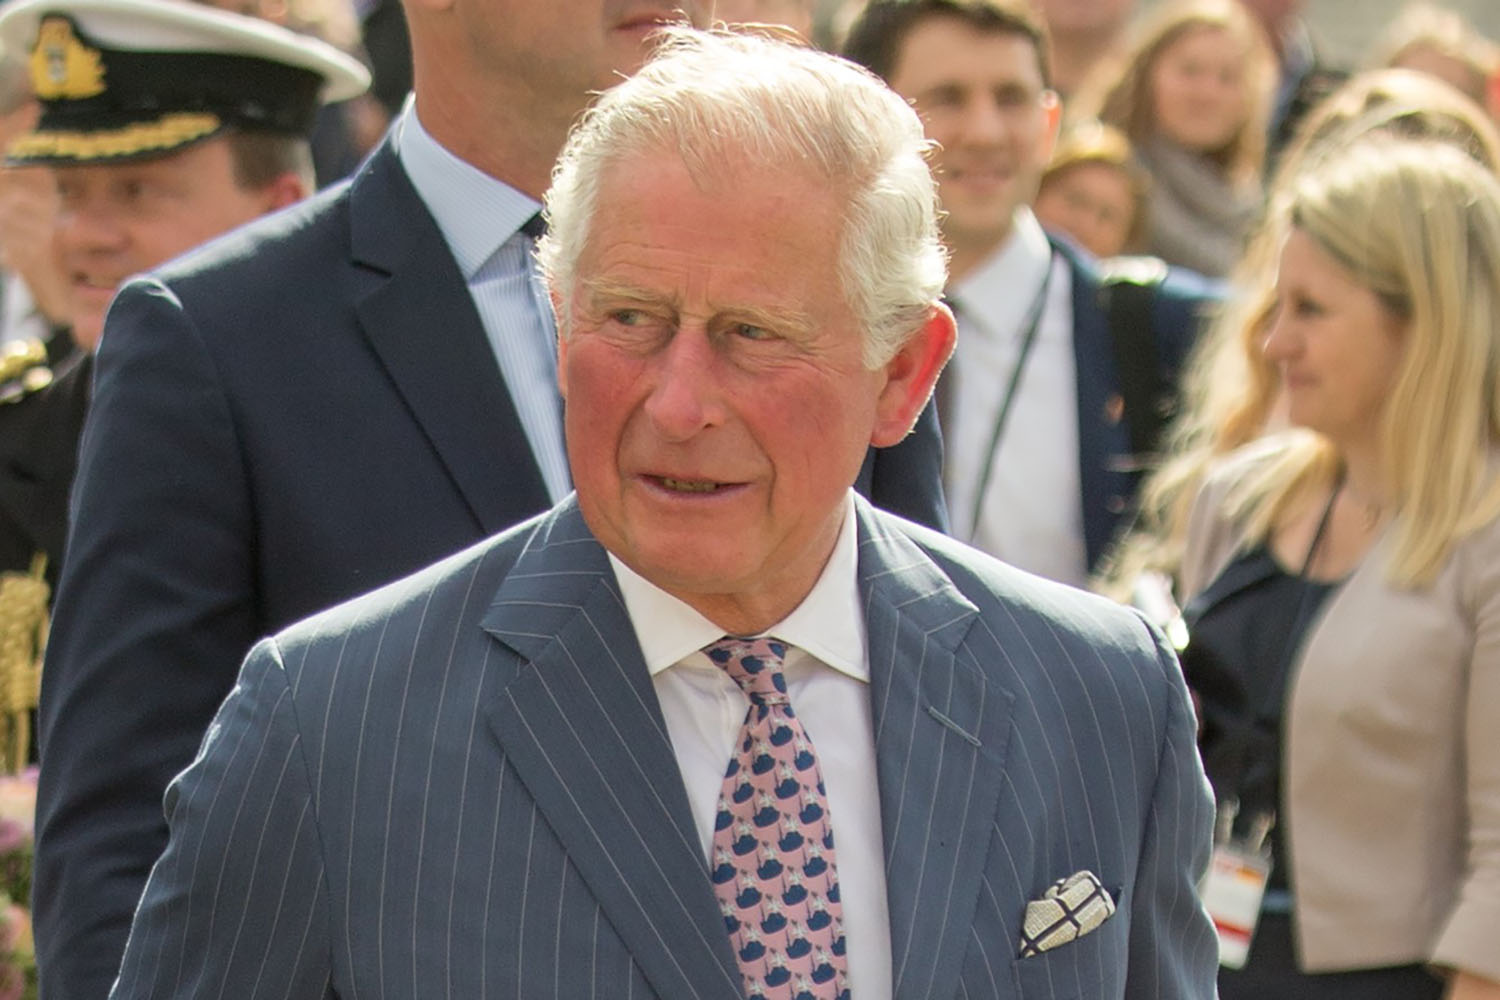 Prince Charles urges jobless Brits to become fruit pickers